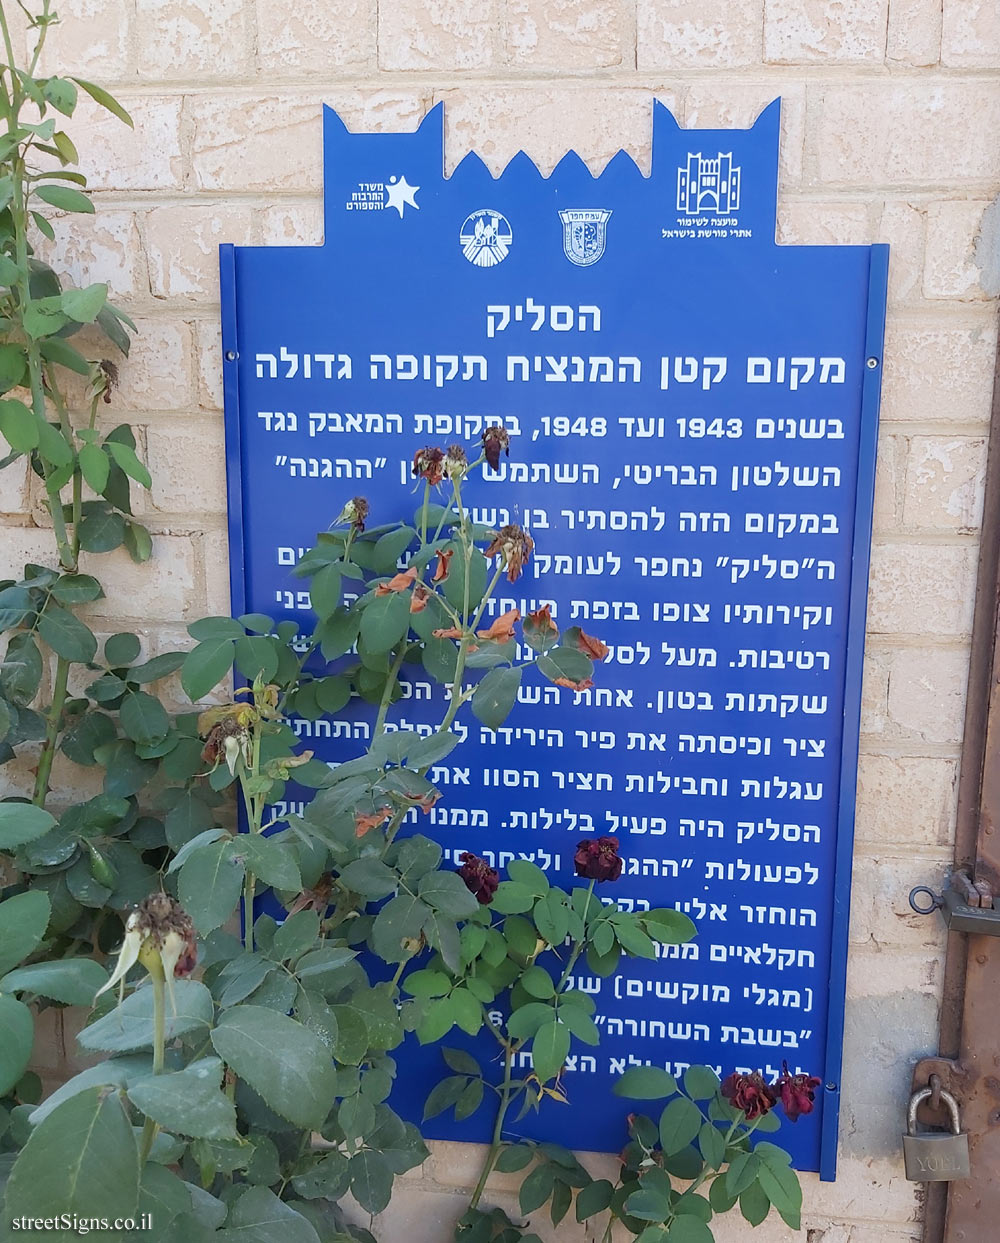 Mishmar HaSharon - Heritage Sites in Israel - Slick (stash)